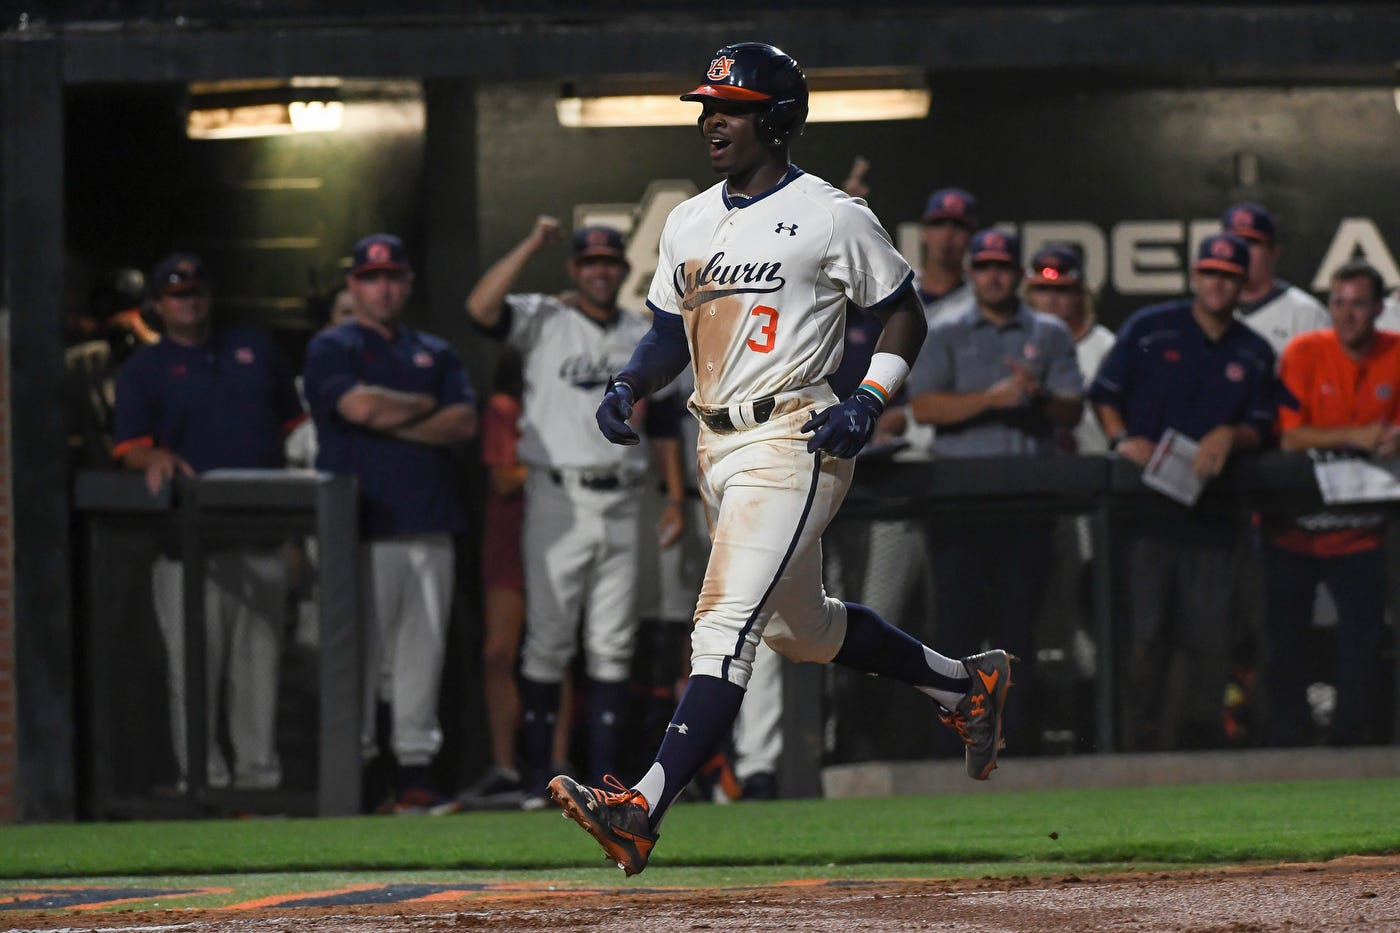 Hogtied: No. 11 Auburn overpowers No. 14 Arkansas in 15-2 blowout win